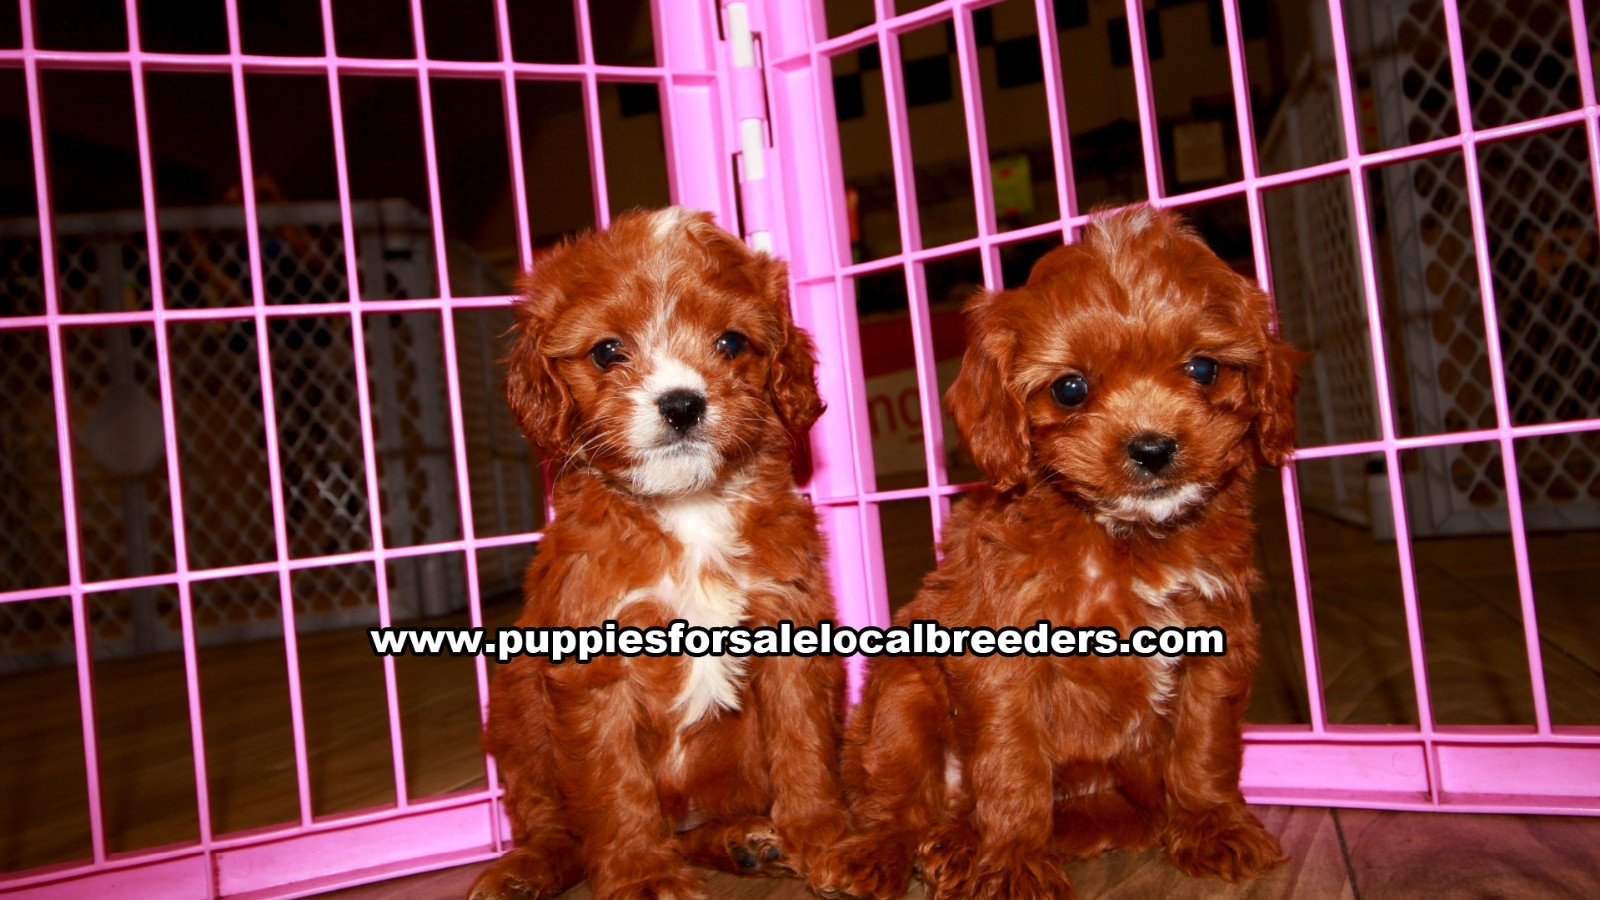 Cavapoo, Puppies For Sale In Georgia, Local Breeders, Near Atlanta, Ga